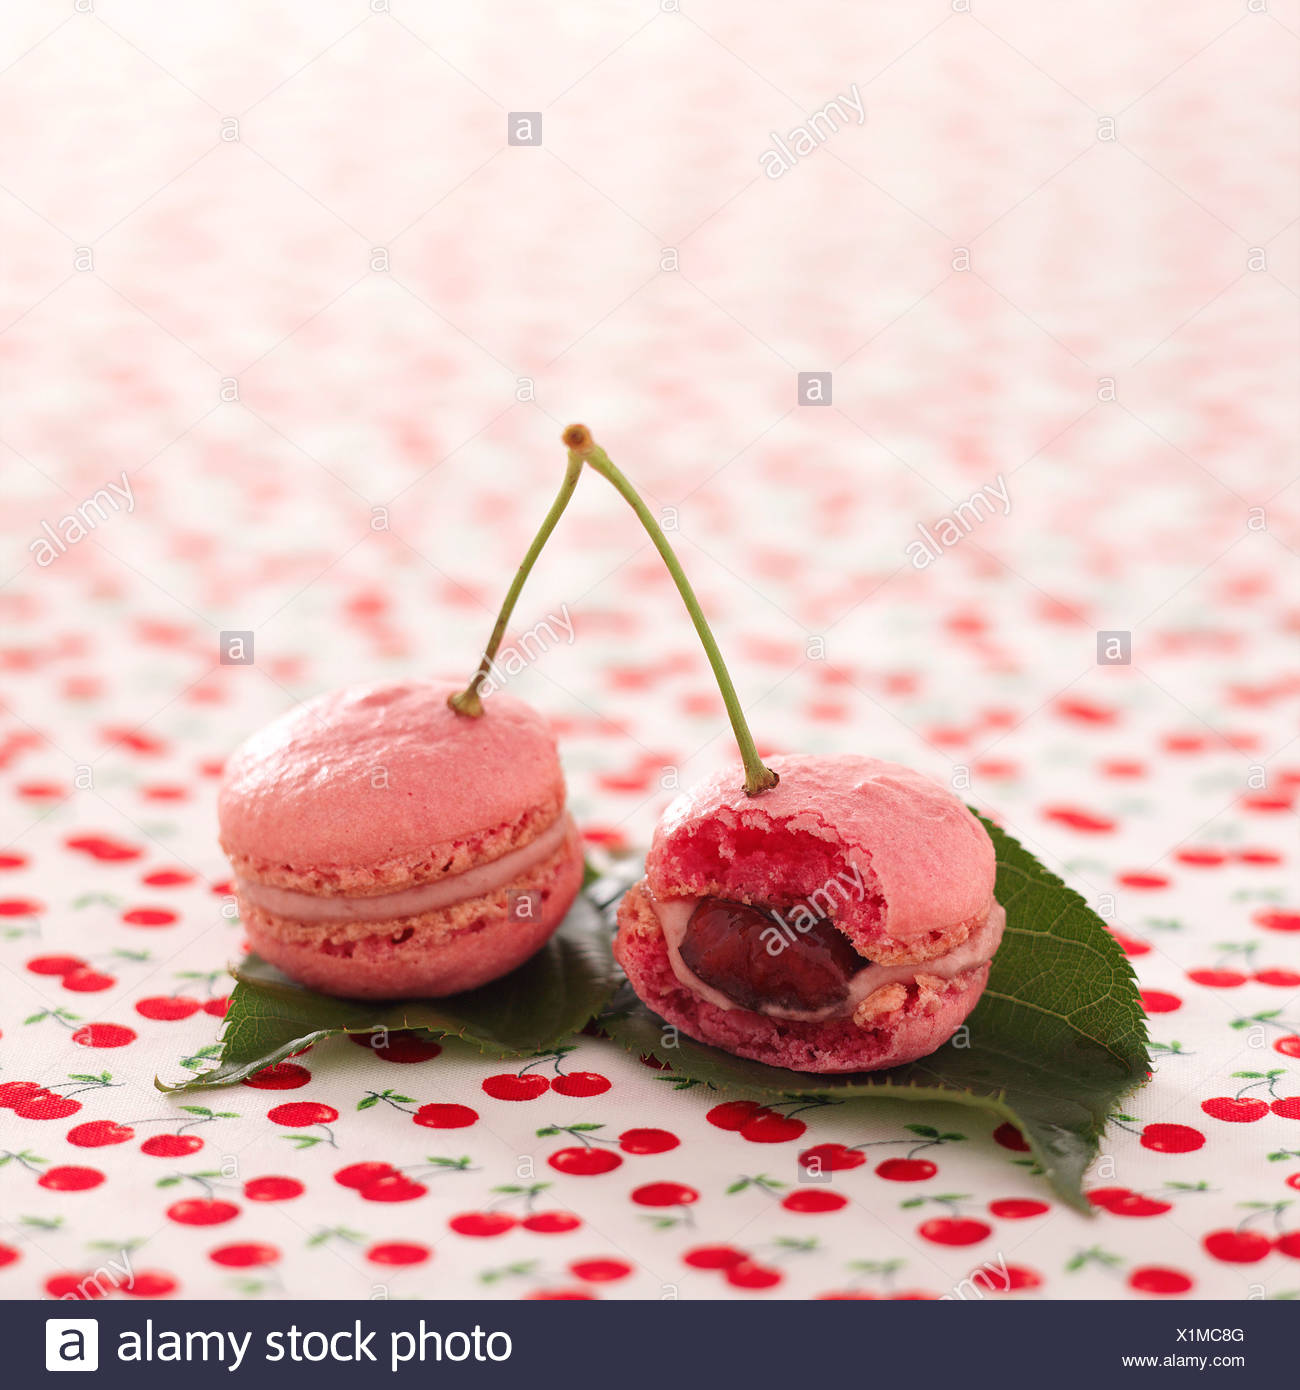 Sour griotte cherry and cinnamon macaroons - Stock Image